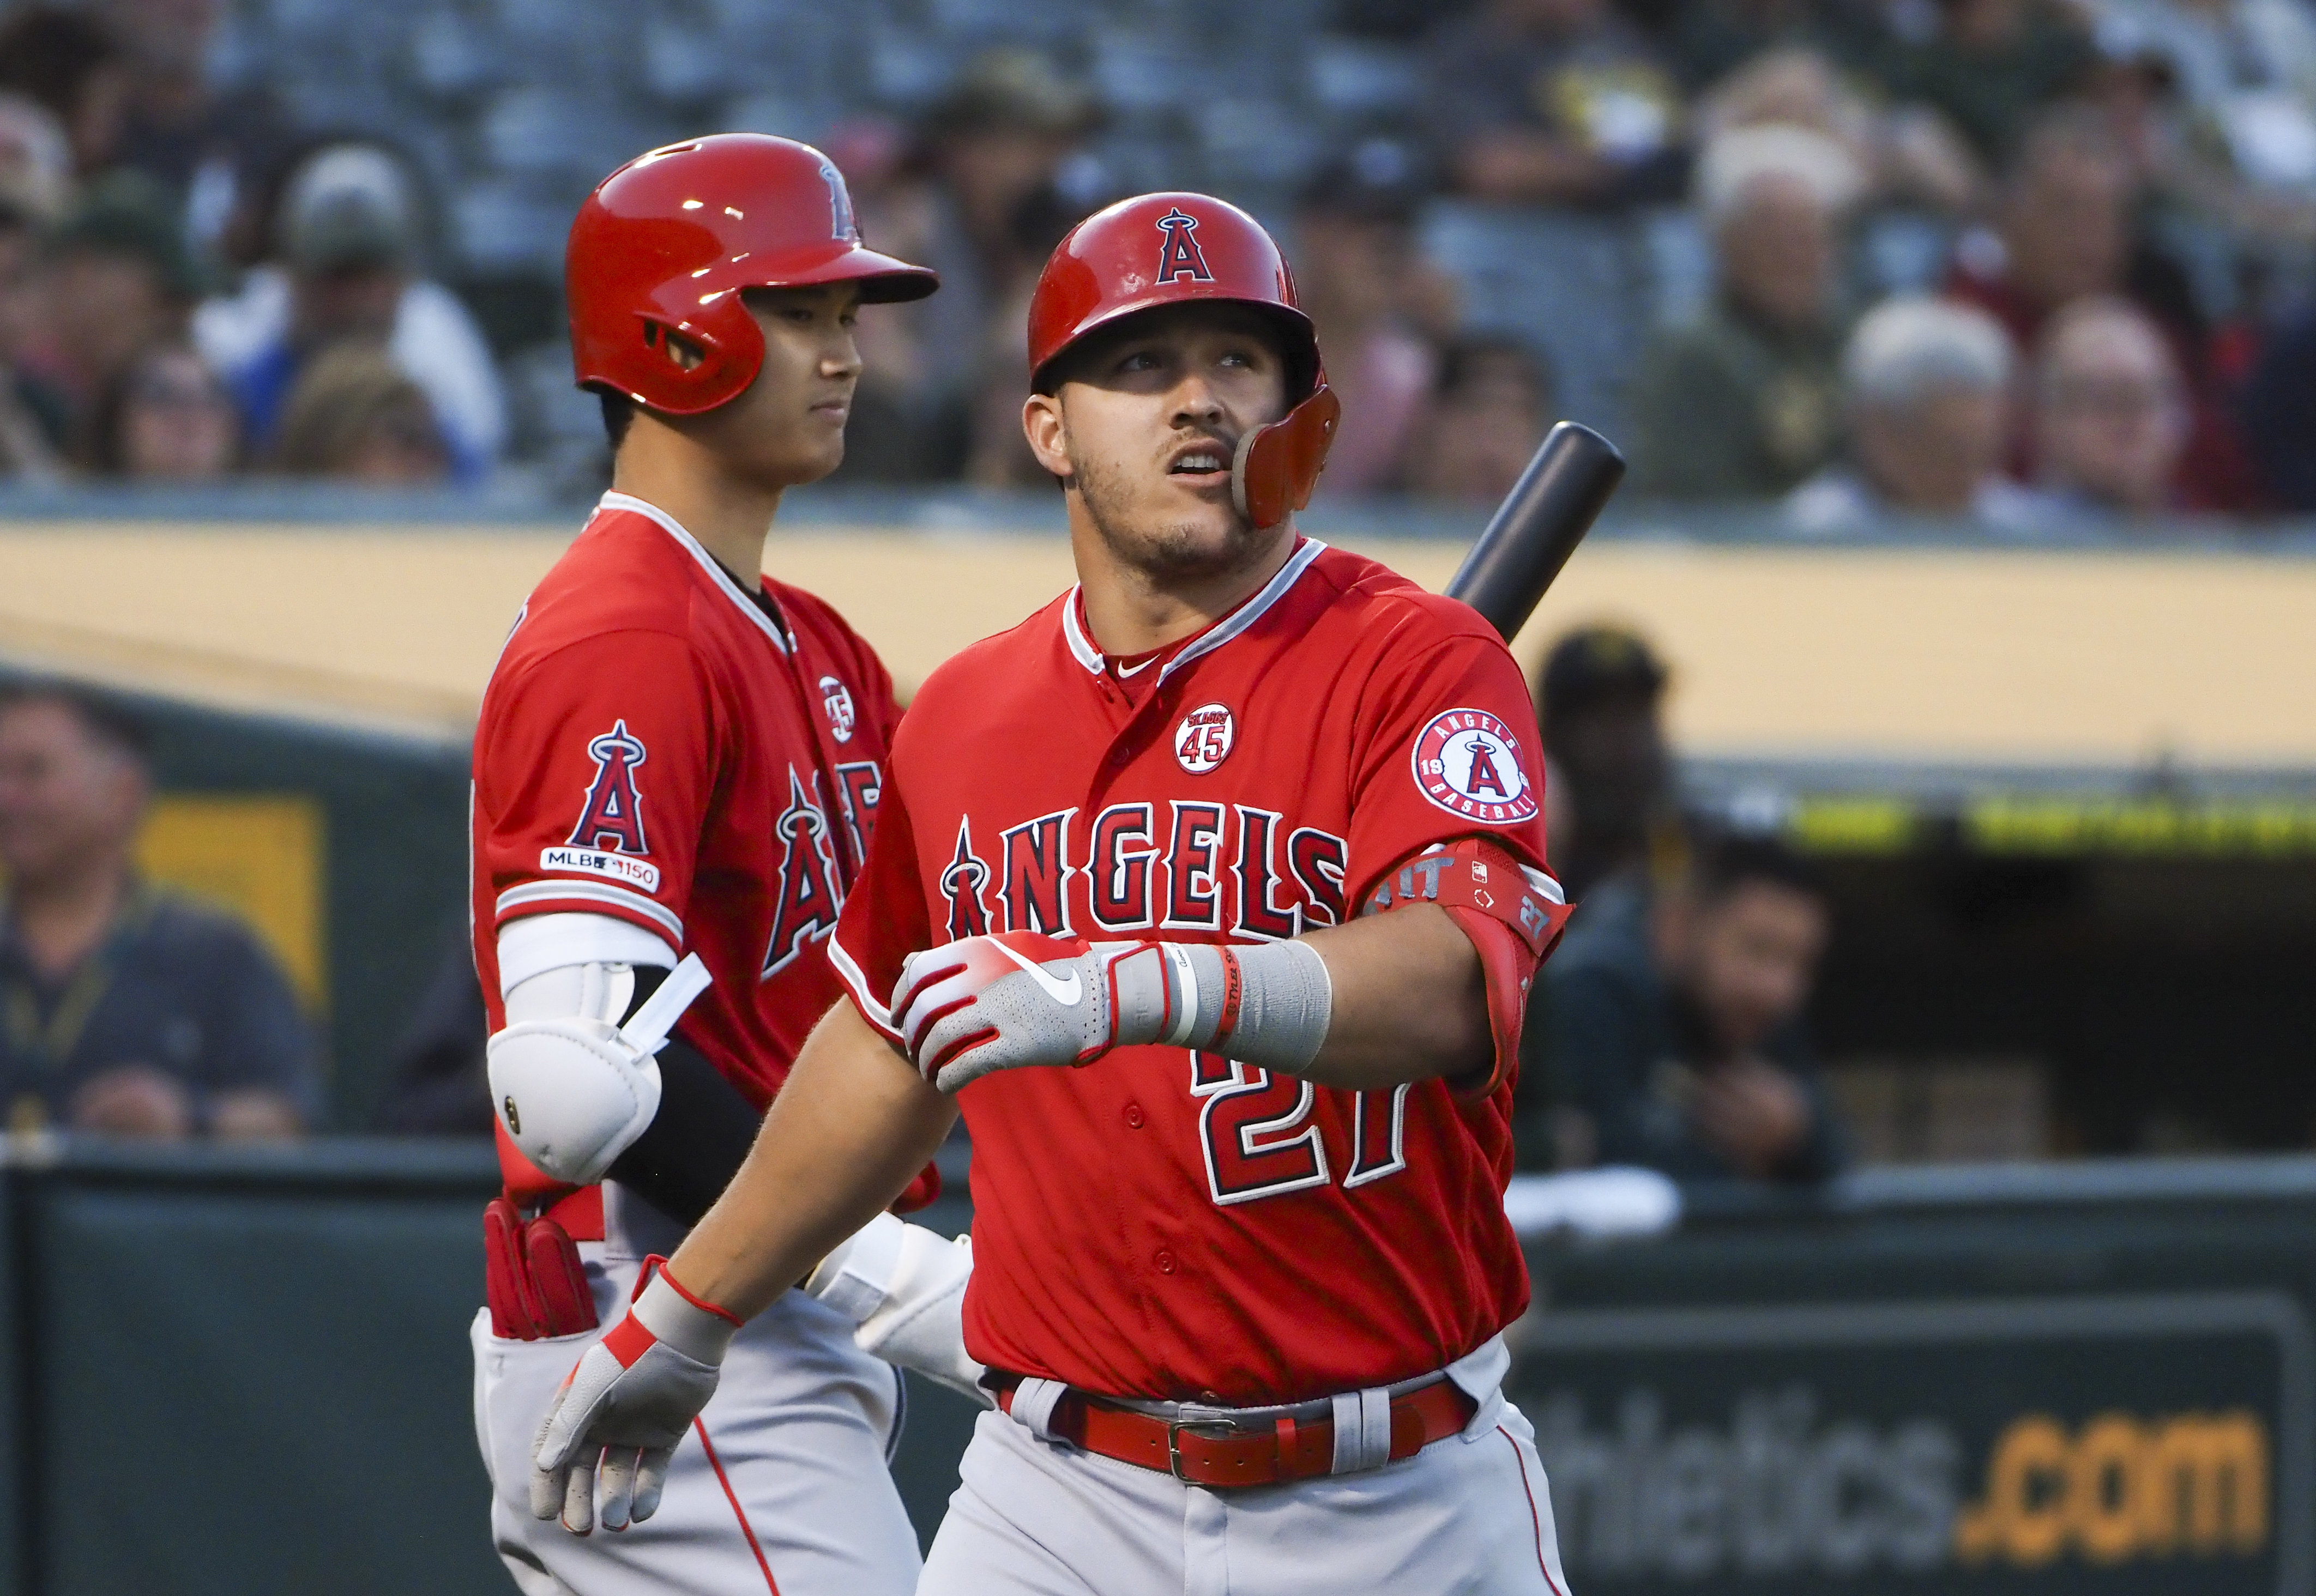 For the Angels to Ascend, They Must Take the Leap - Baseball Prospectus